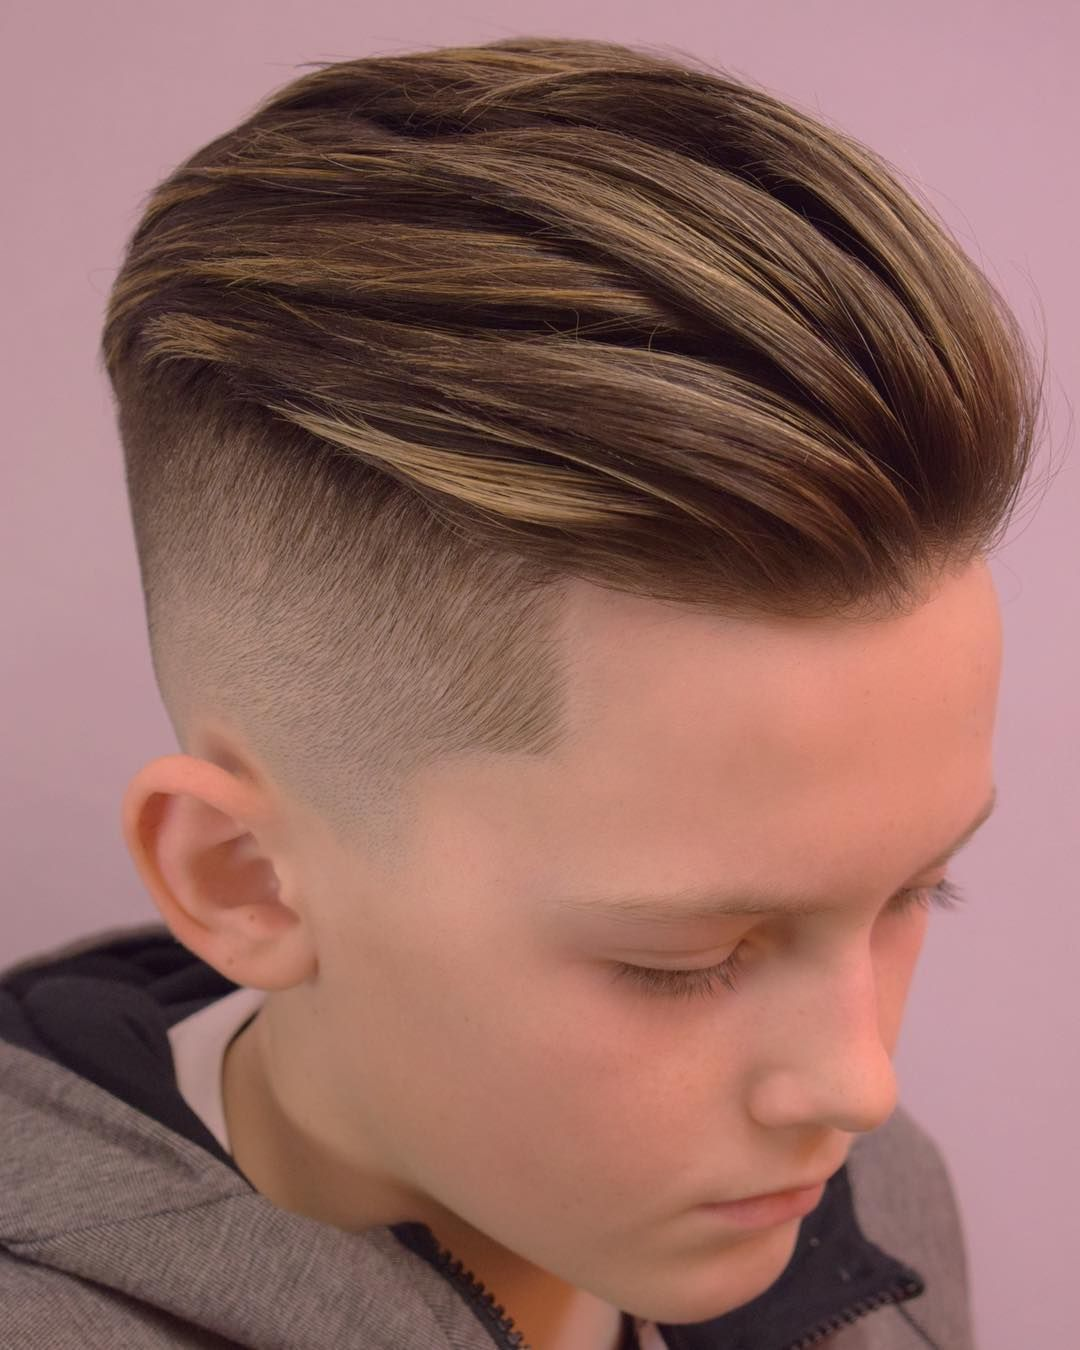 Hairstyles For Kids Undercuts Hairstyles Boys  Textured Hairstyles & Haircuts